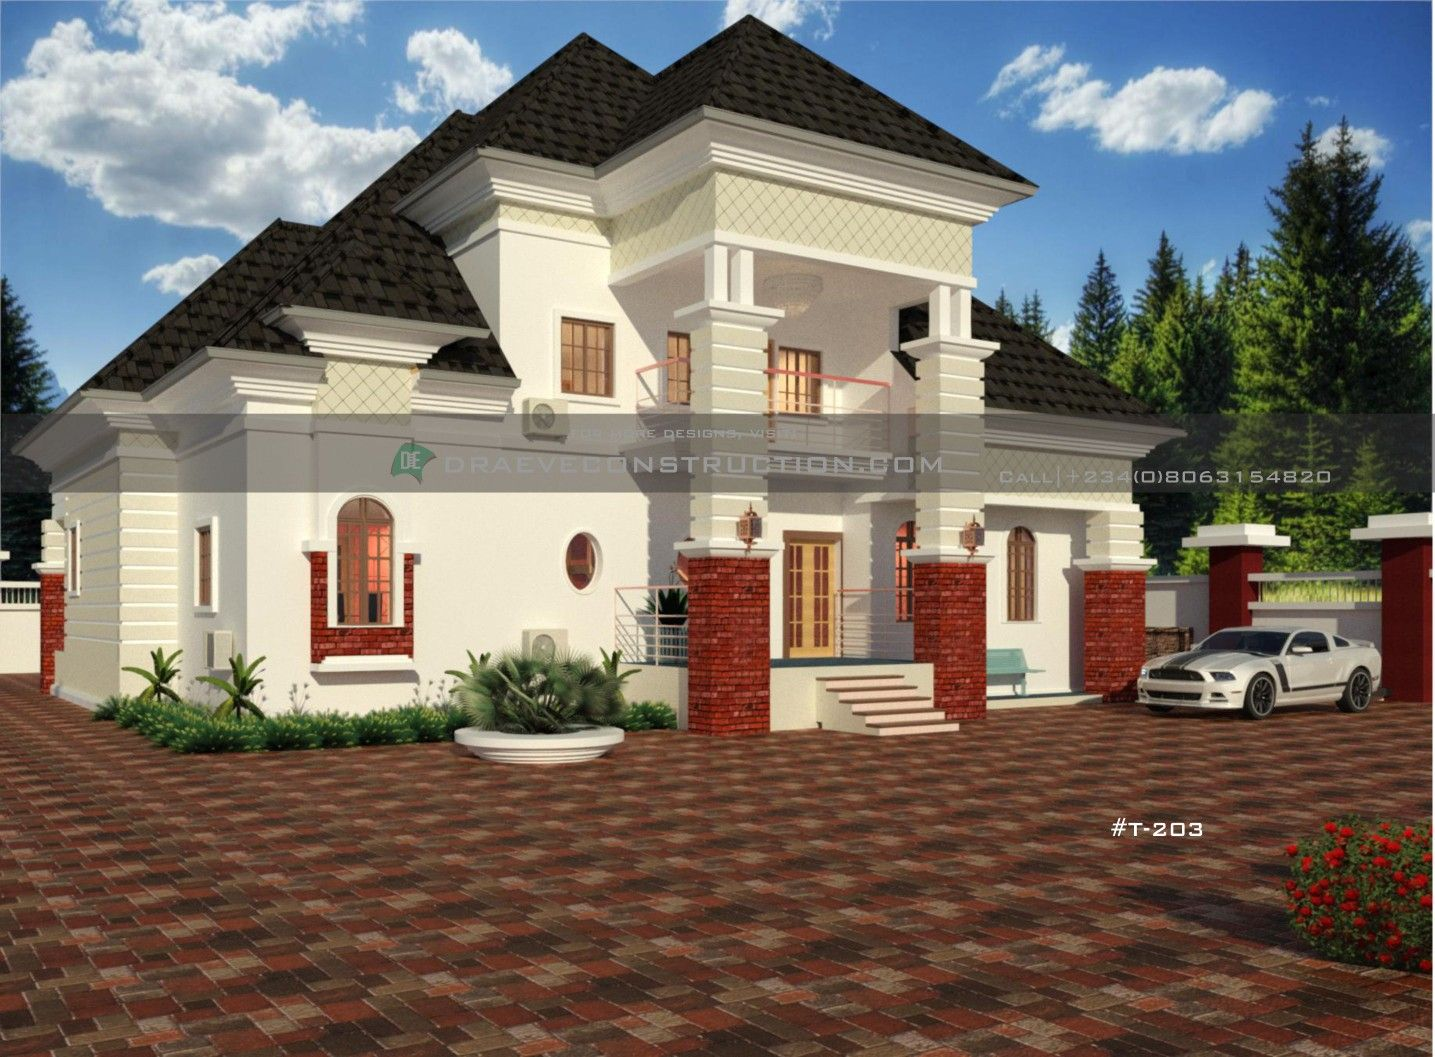 5 Bedroom Bungalow With Penthouse In Nigeria Architect Design House Building House Plans Designs House Plan Gallery